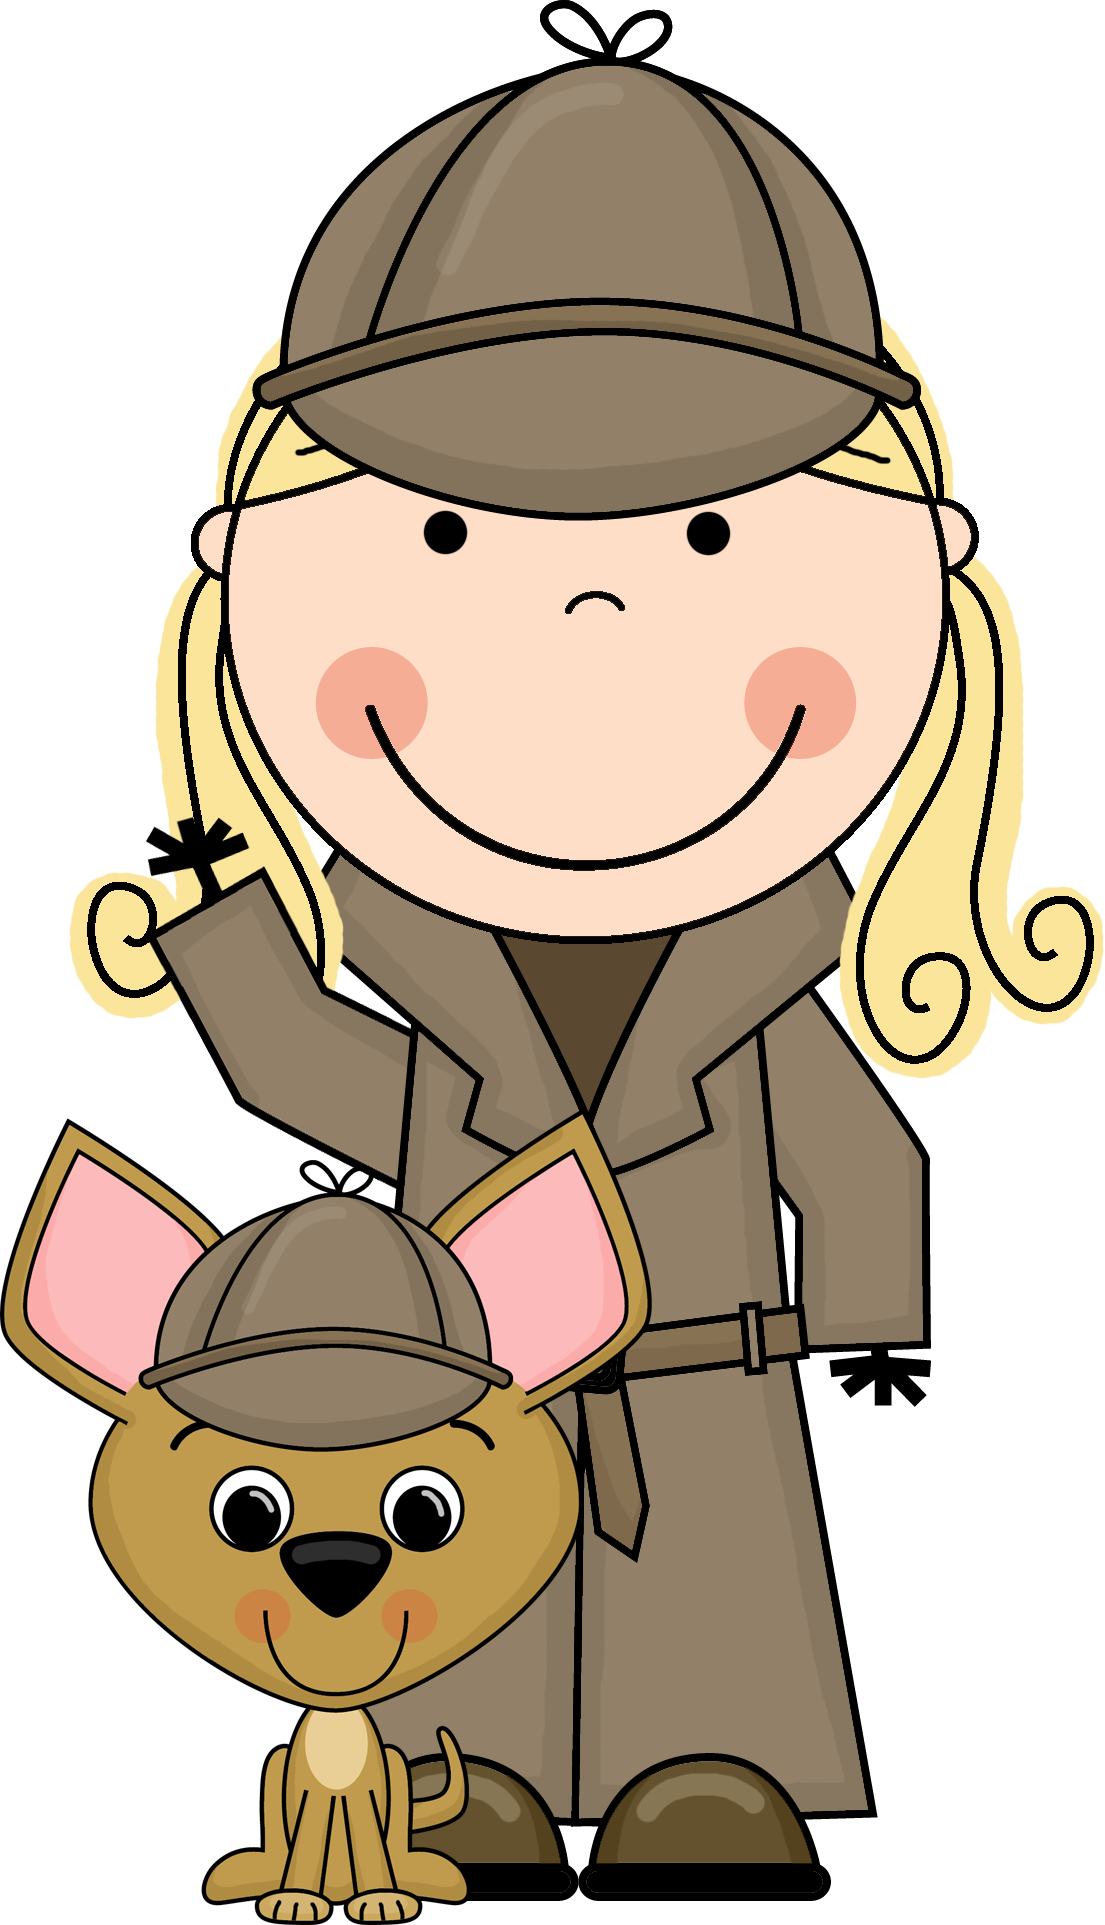 vector royalty free stock Problem clipart. Detective woman free collection